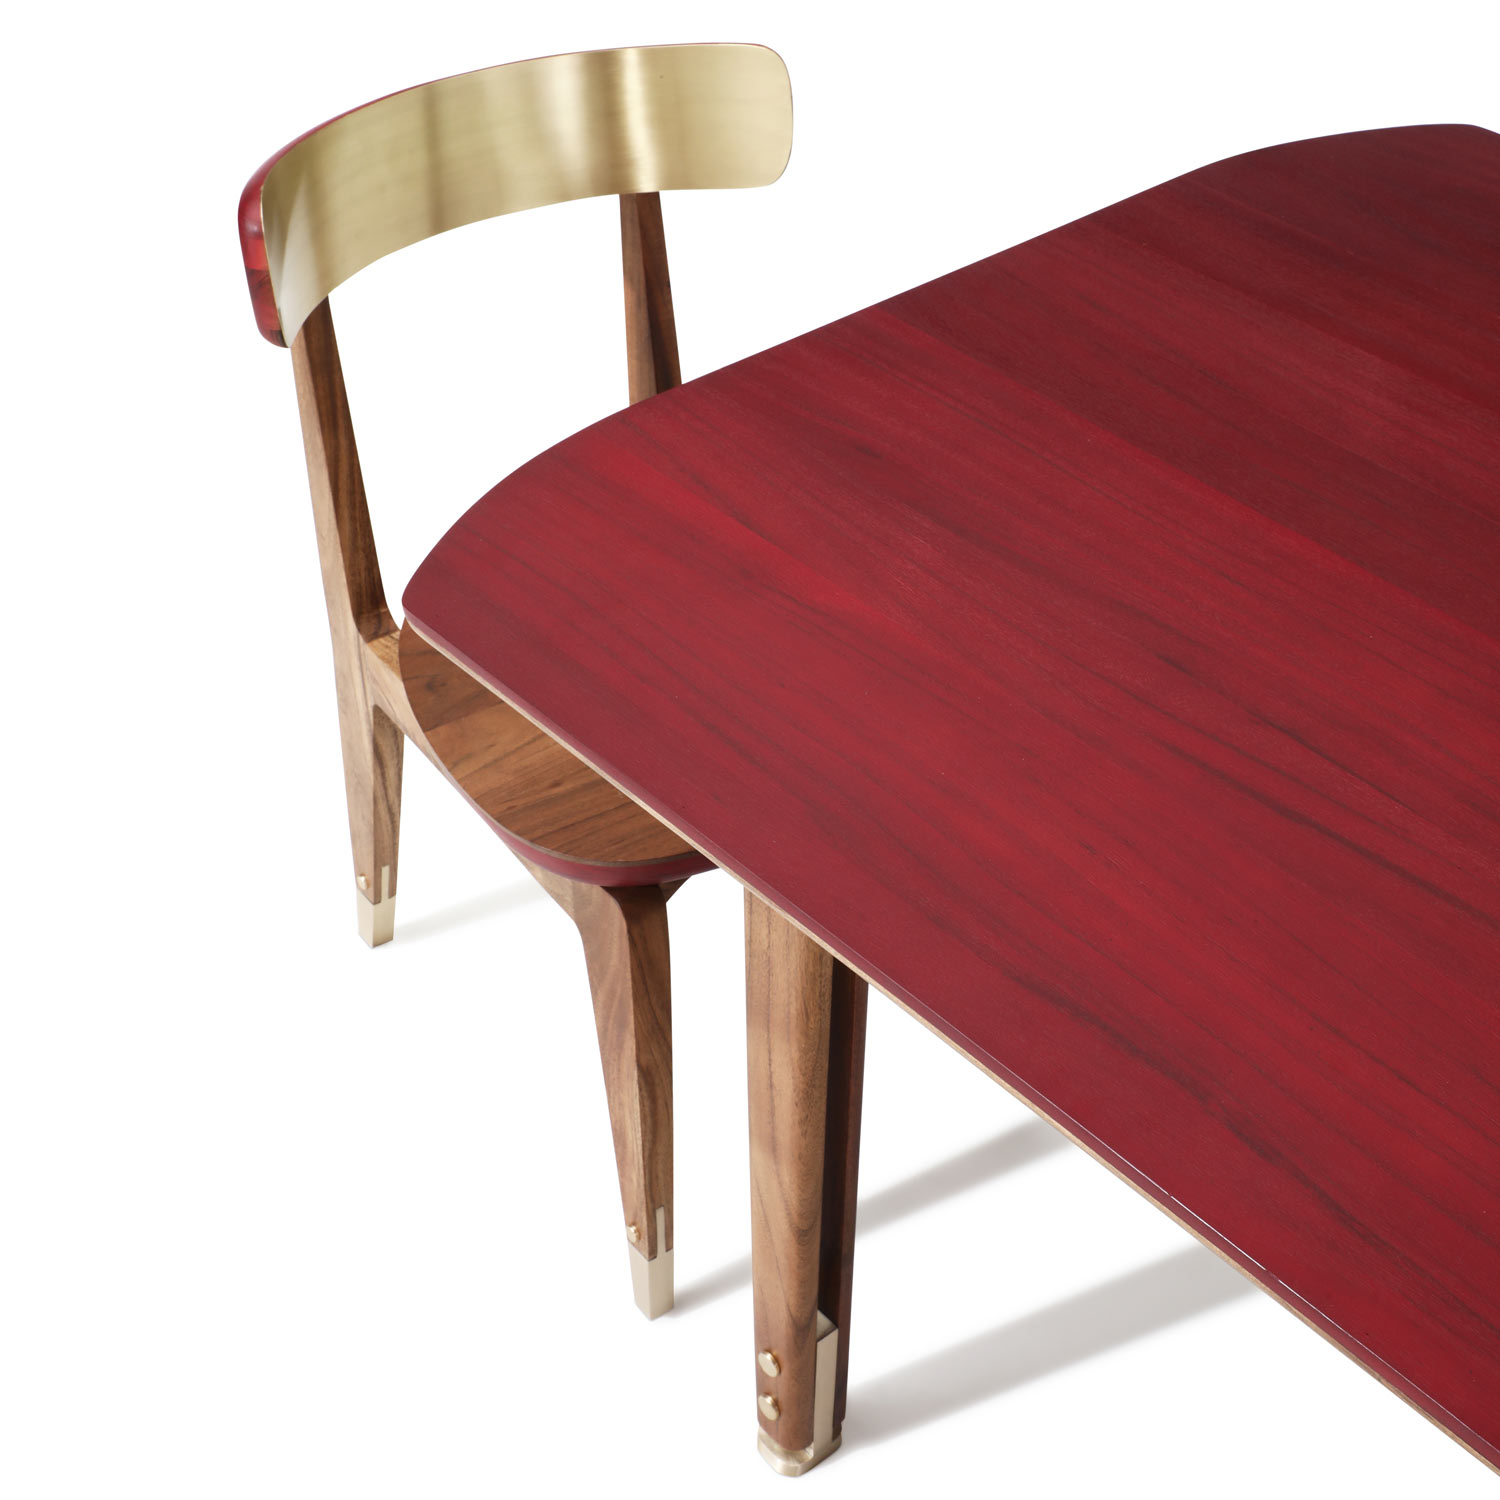 EDITAMATERIA-X-Delvis,-InEdita-table-and-chair-by-Matteo-Cibic-(2).jpg